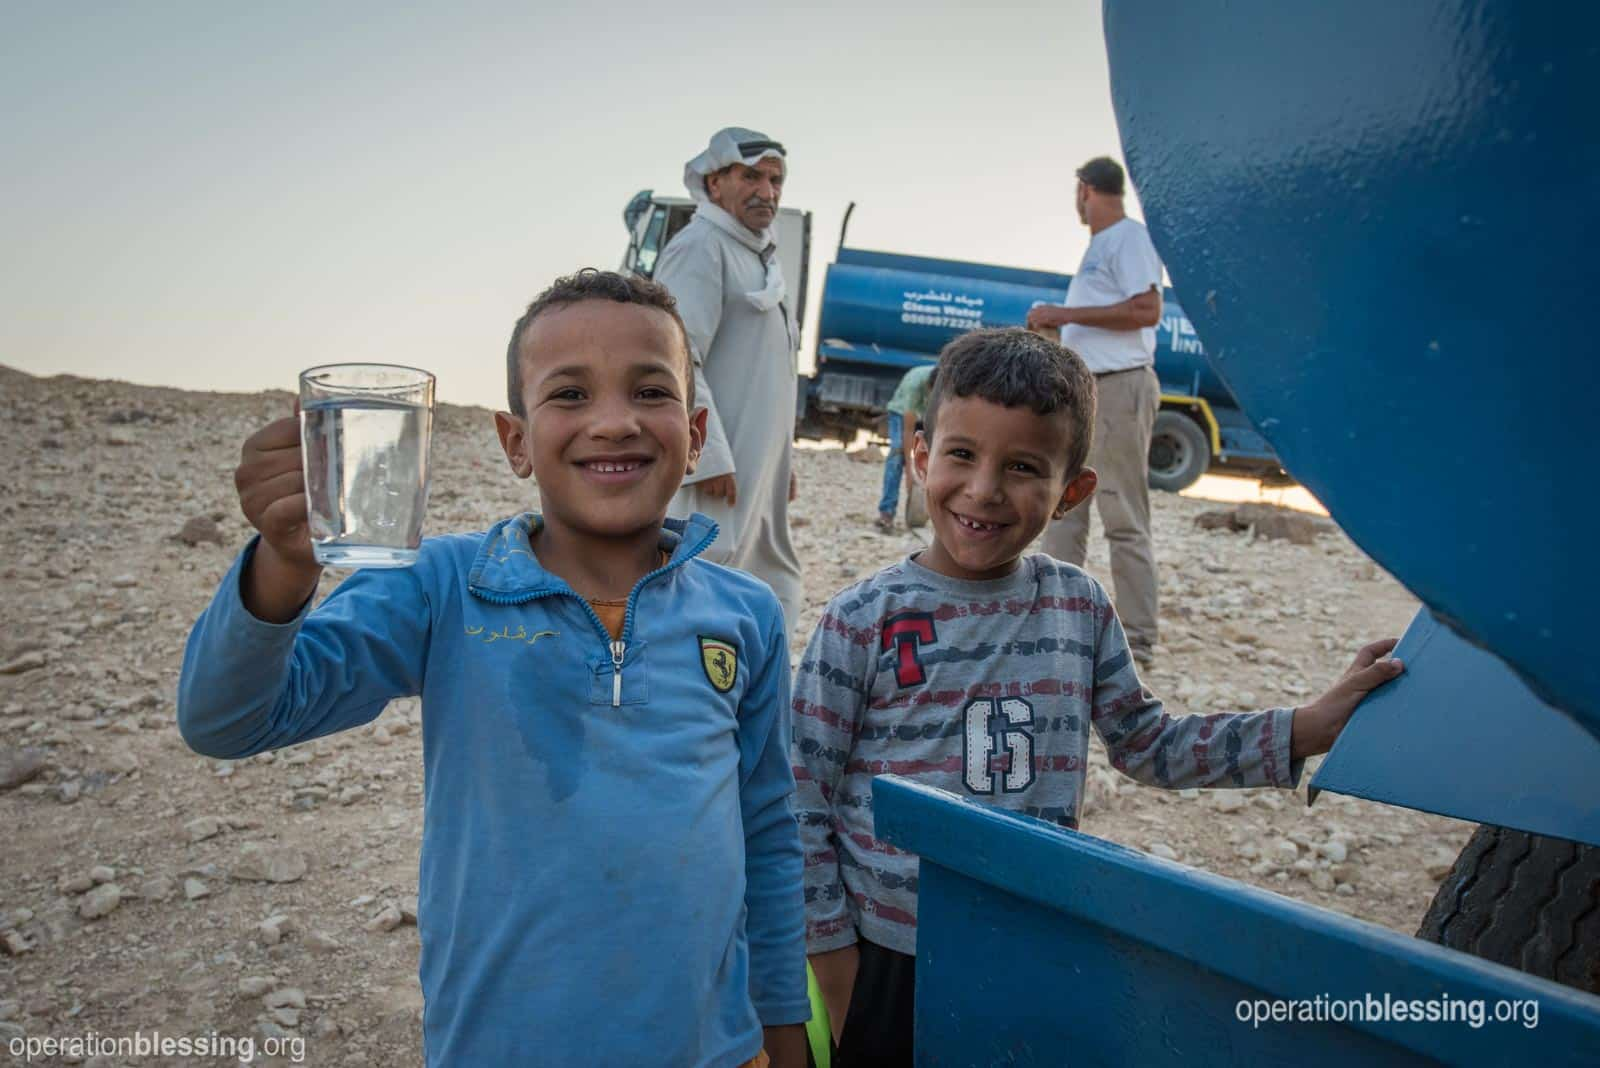 Celebrating World Water Day. Two boys in the Judean Desert with clean water.